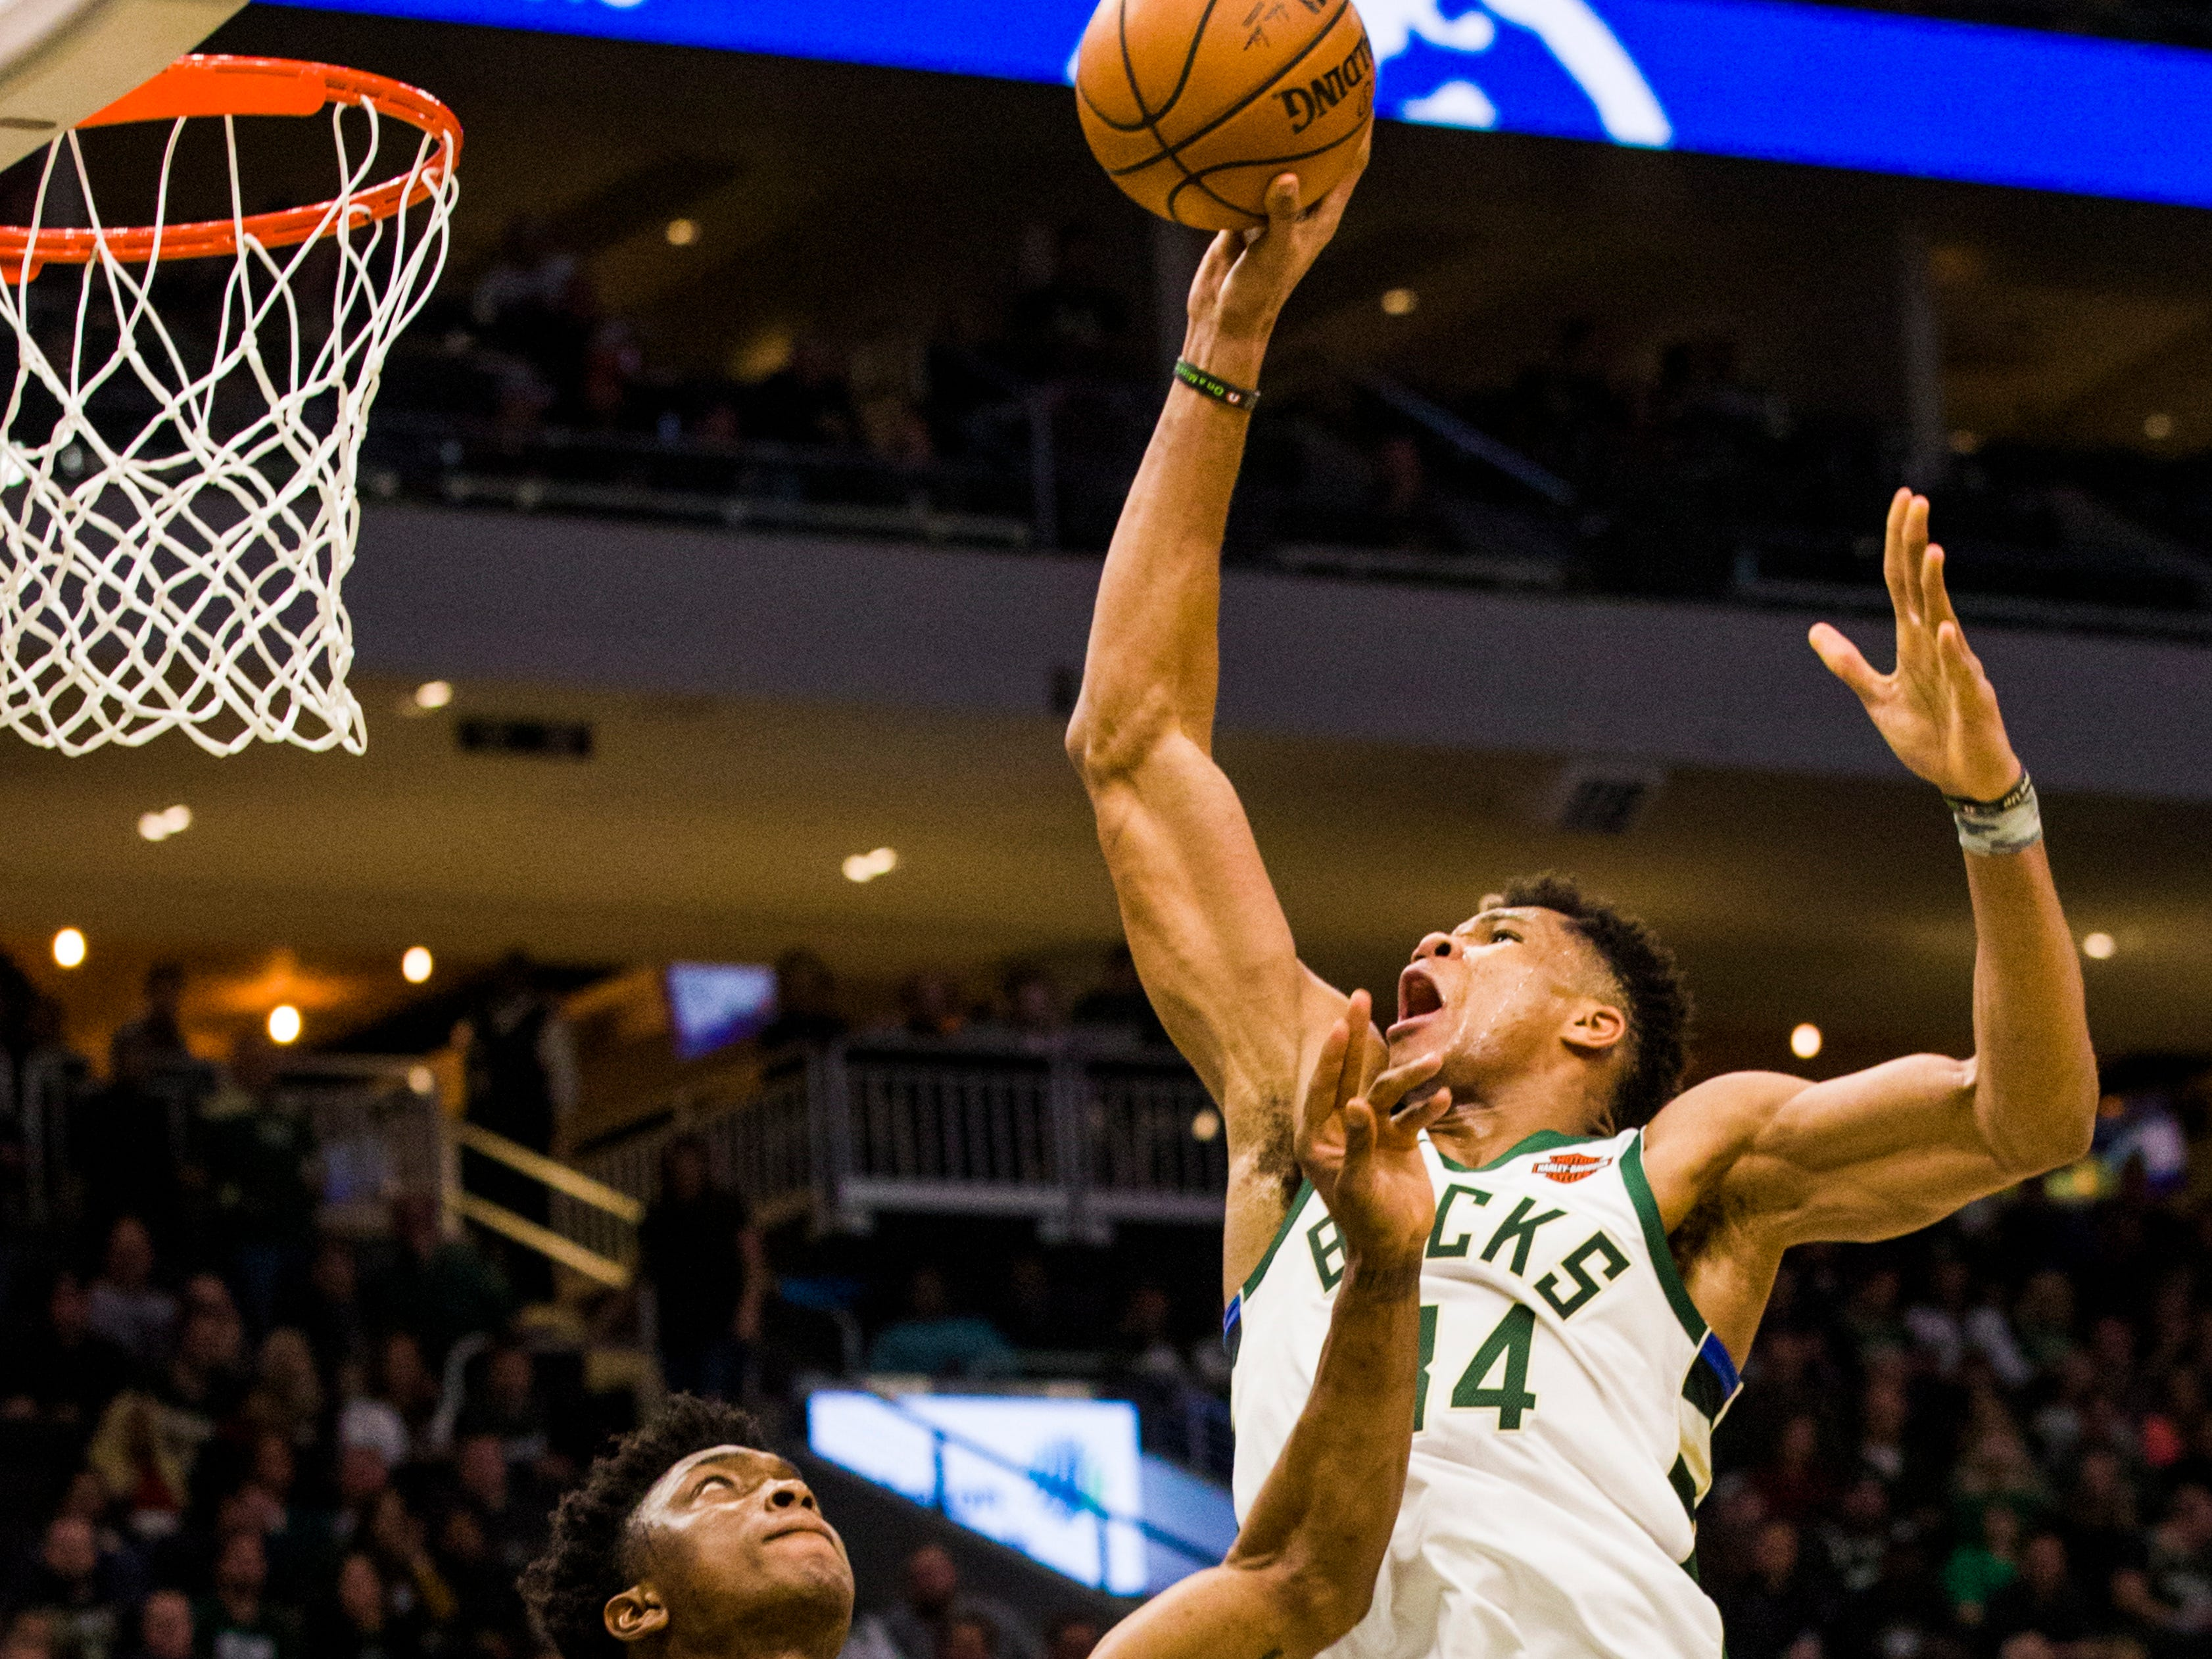 Bucks forward Giannis Antetokounmpo gets ready to thrown down a dunk over the Pistons' Stanley Johnson on Wednesday night.